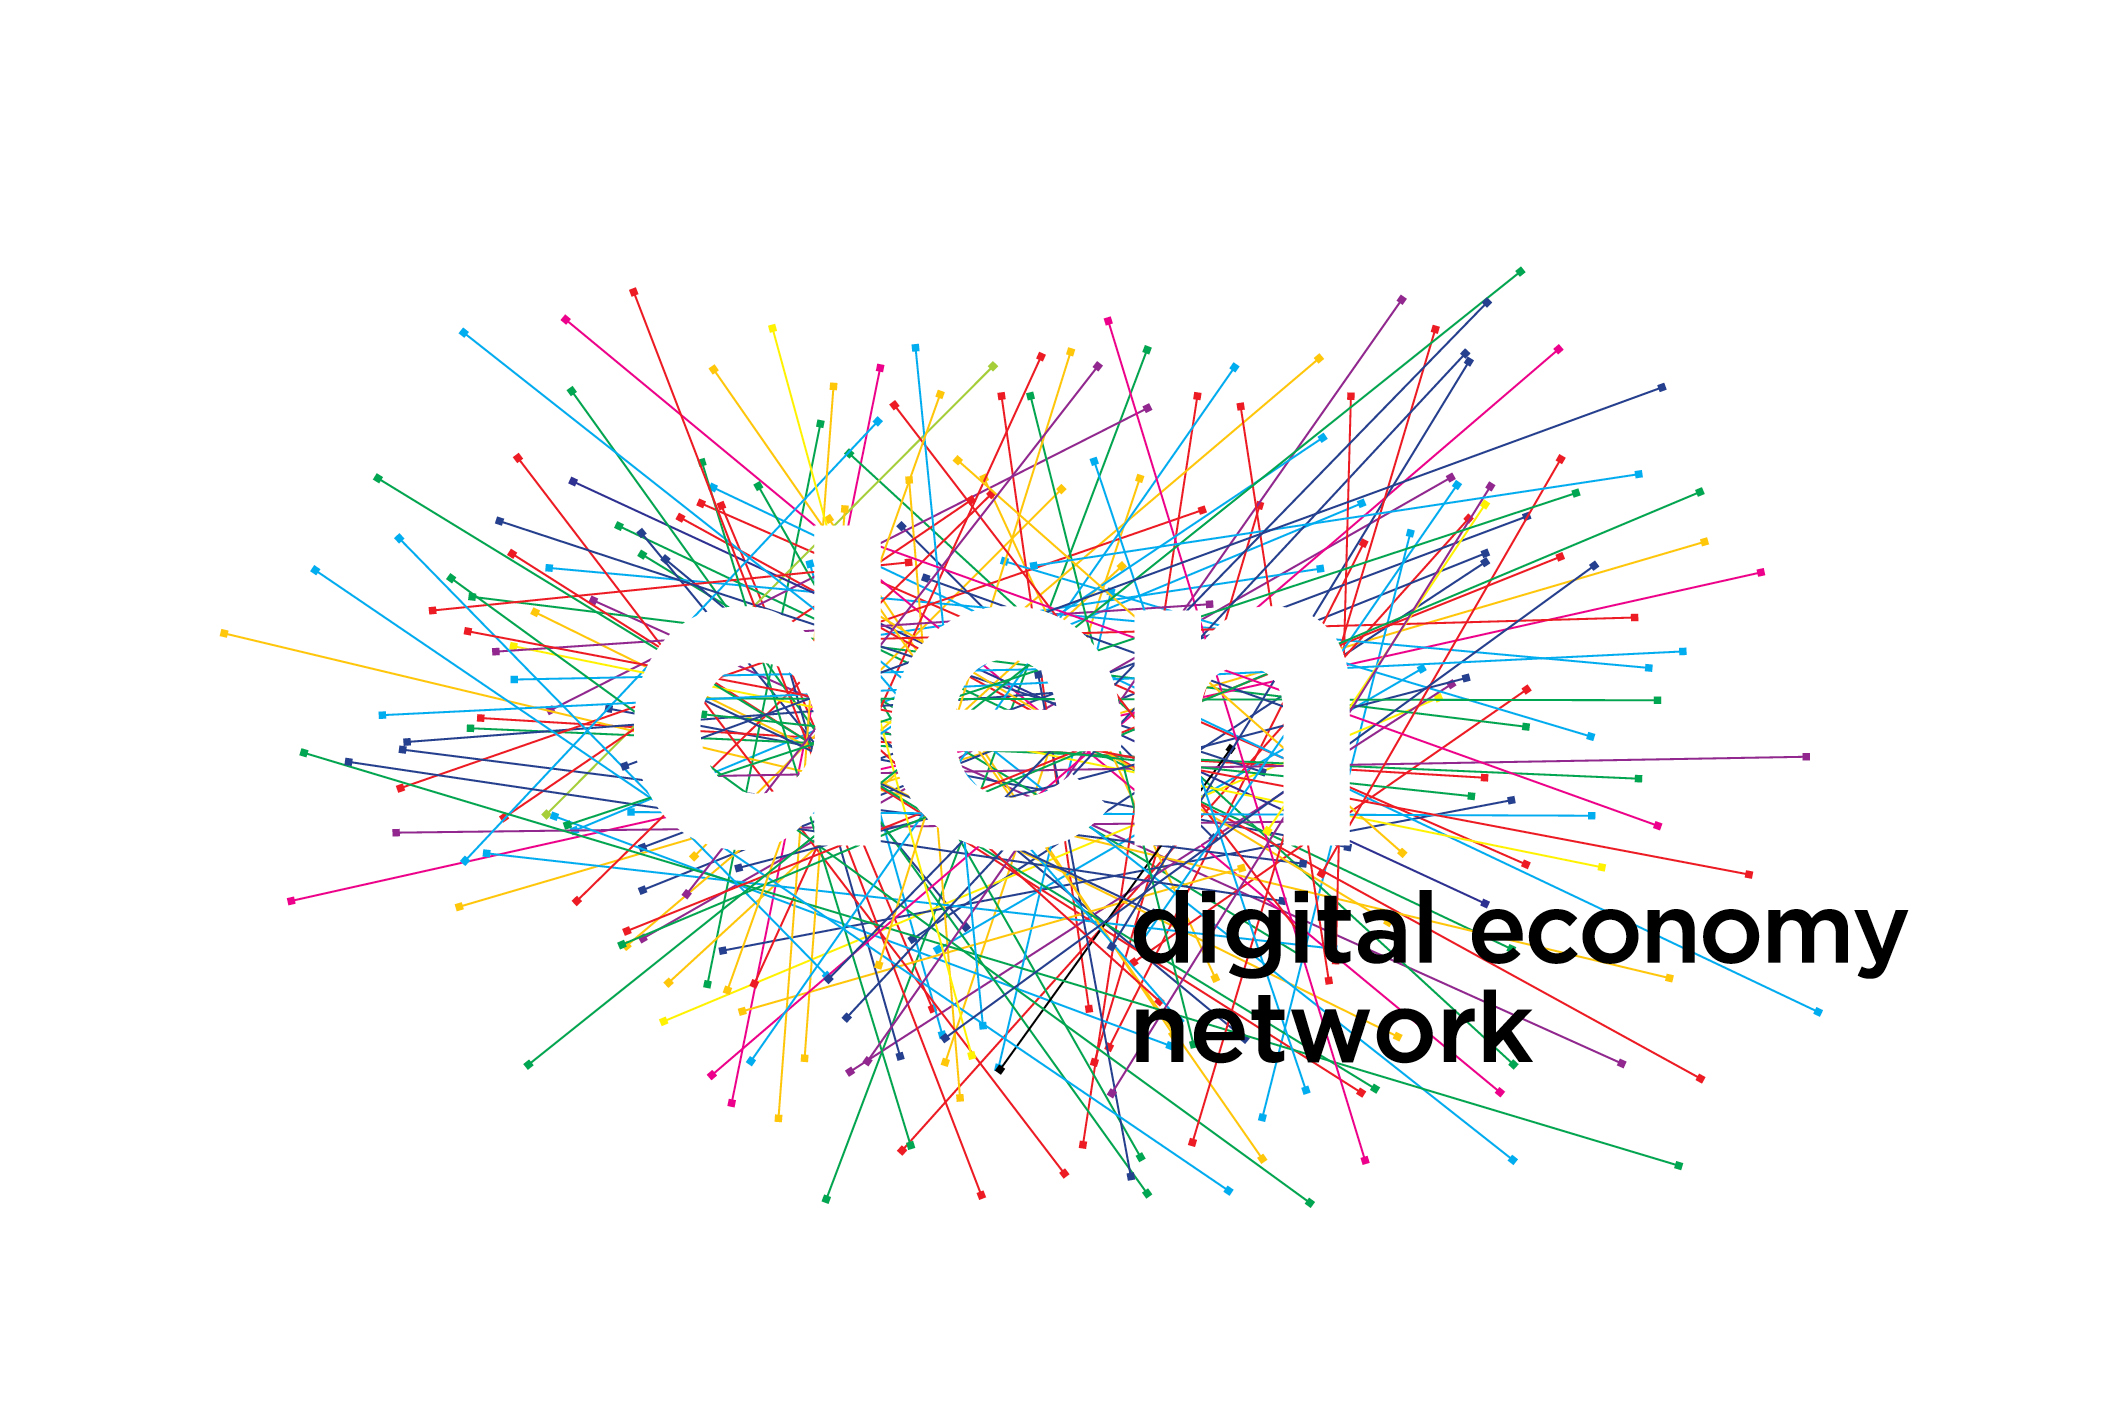 The Digital Economy Network logo. It consists of a network of colorful lines with the letters 'den' in white on top.